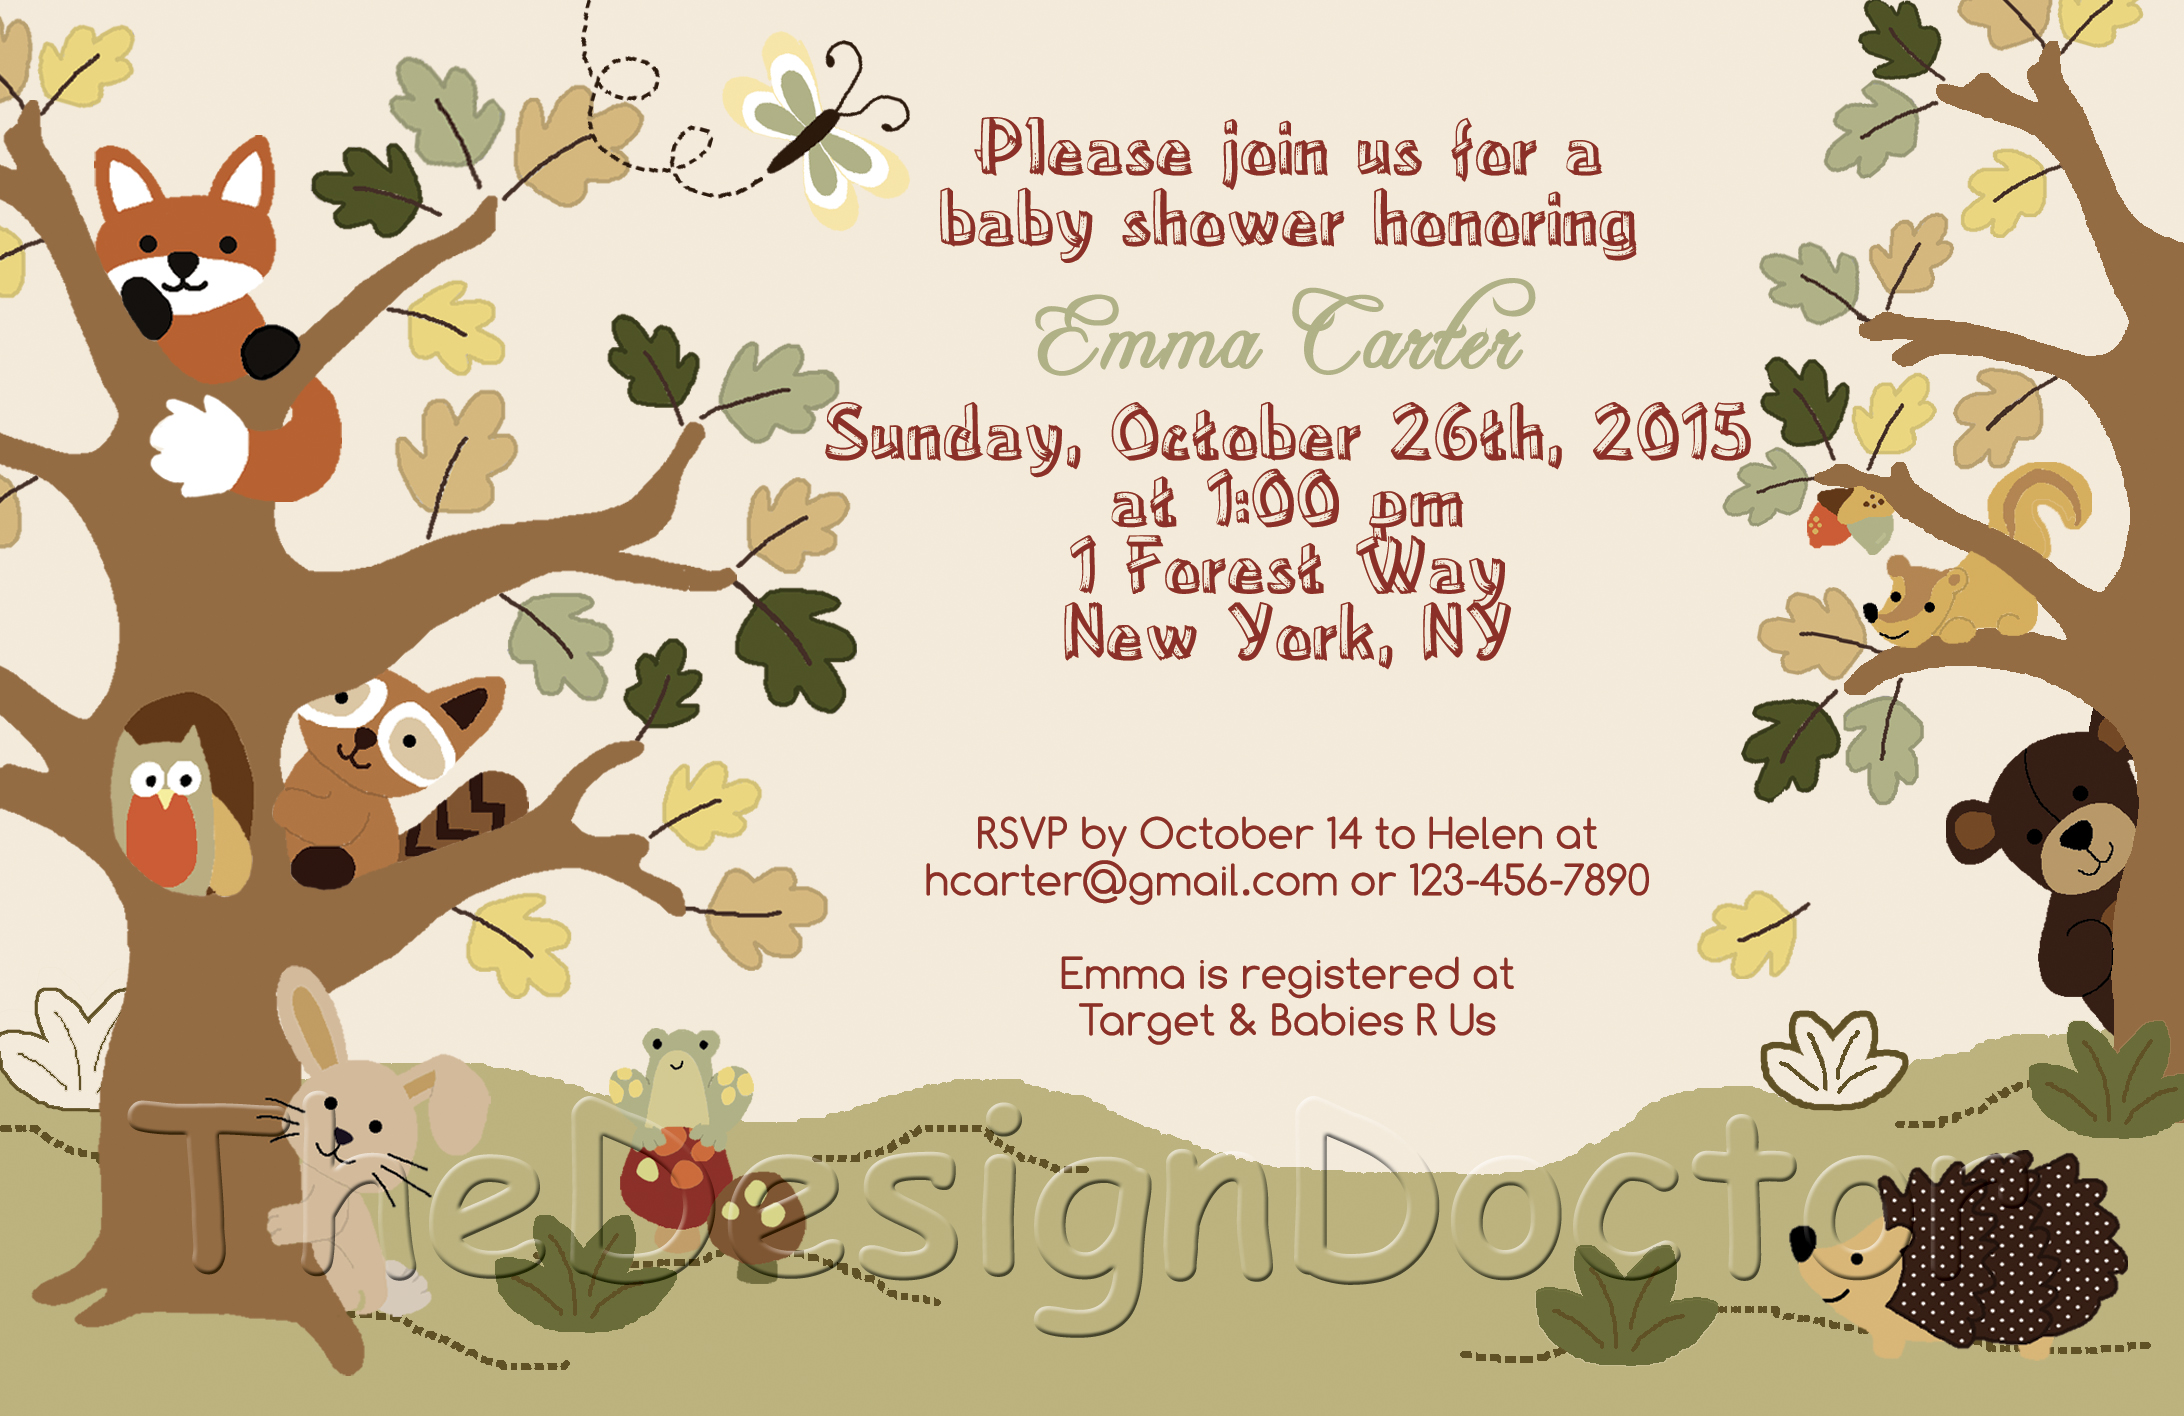 Woodland Animal Echo Forest Friends Theme Baby Shower Invitation